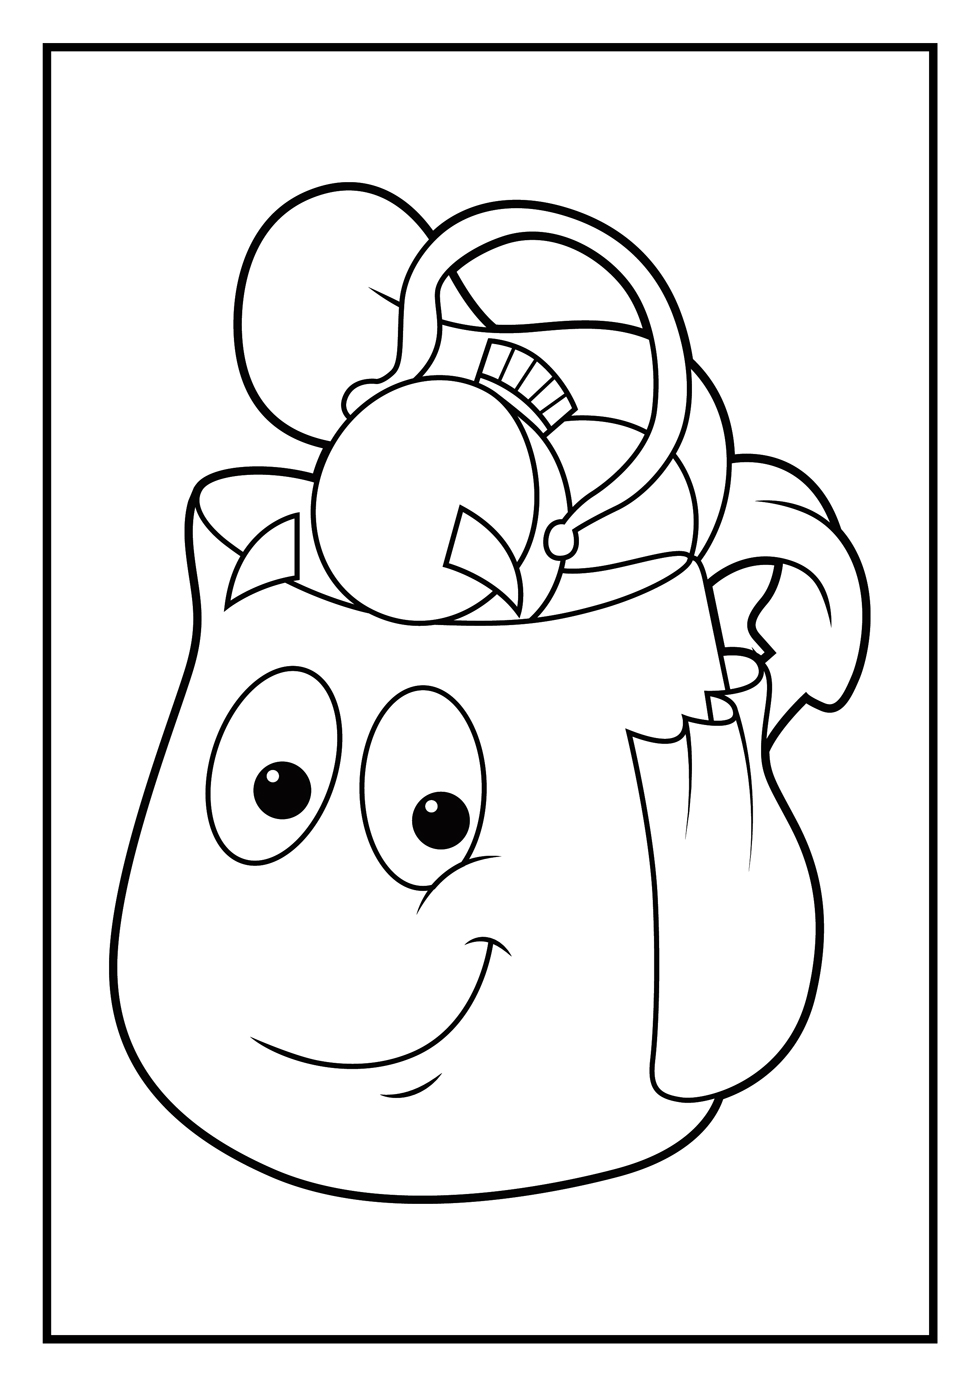 deigo coloring pages - photo#25